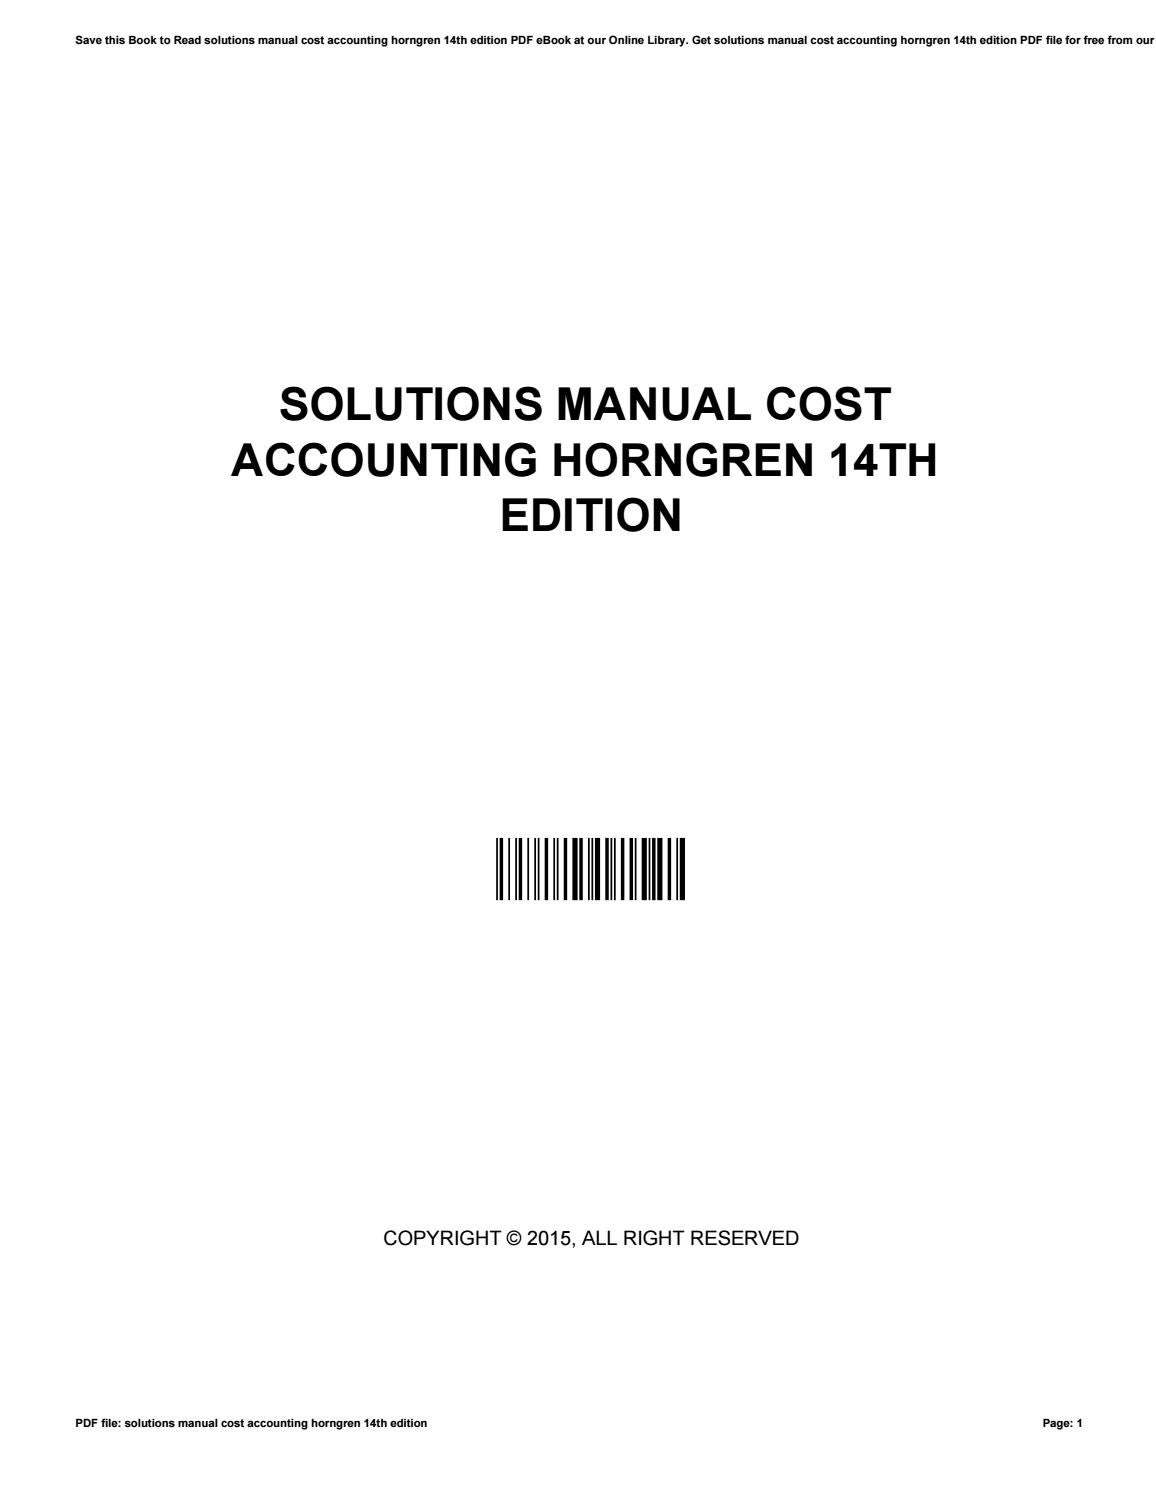 cost accounting solution manual 14th edition